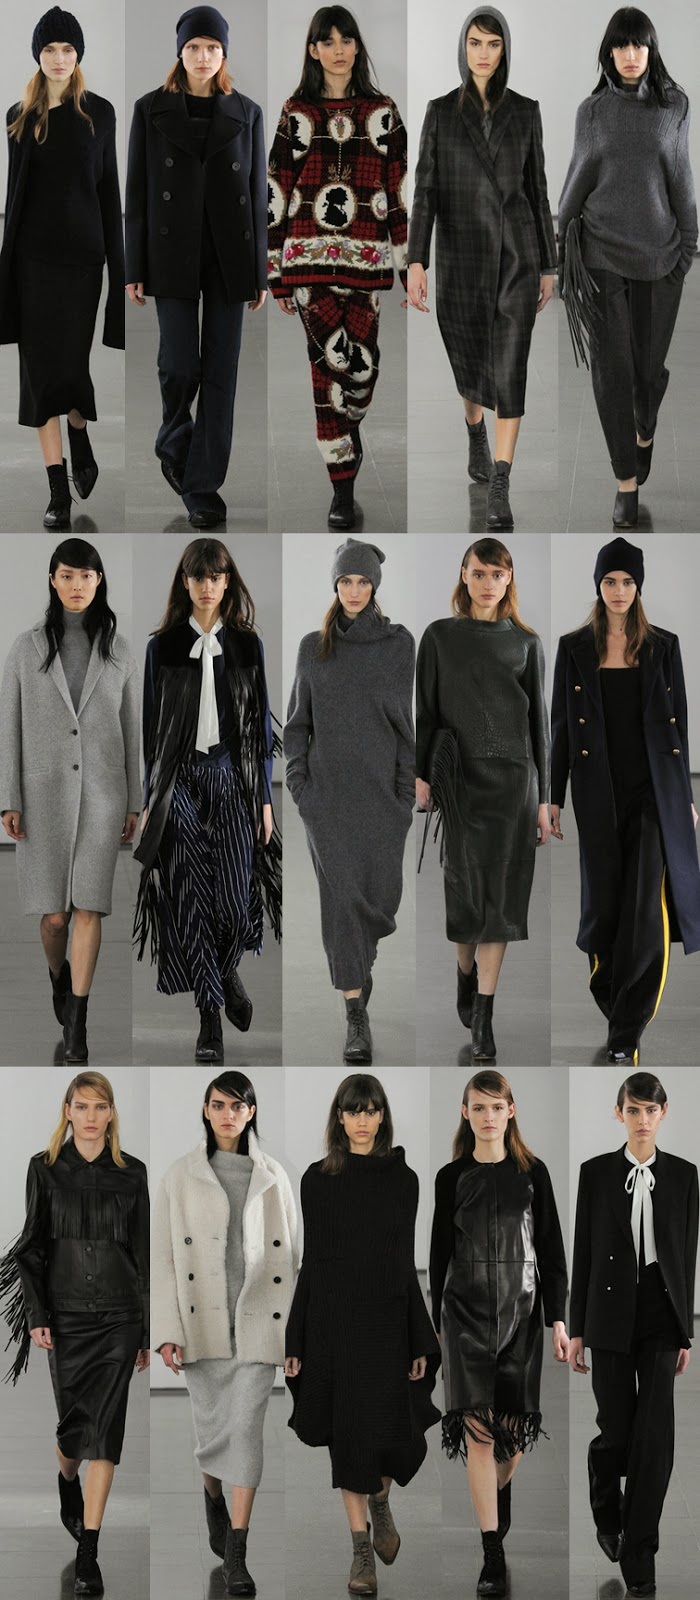 Joseph fall winter 2014 runway collection, FW13, AW14, London fashion week, minimalism, tassels